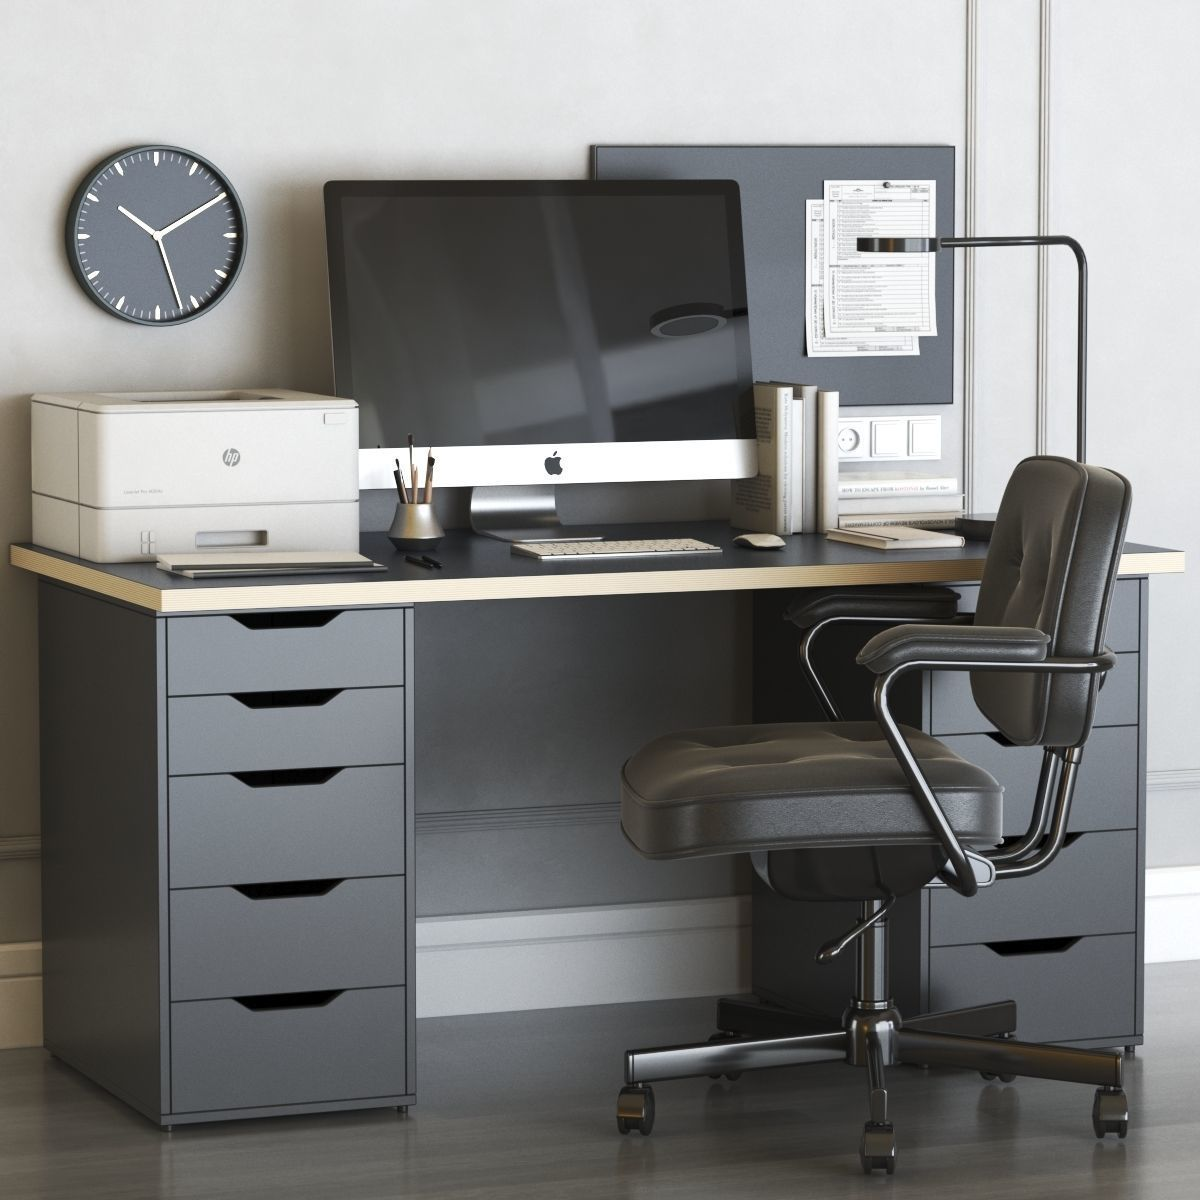 office workplace with ALEX table and ALEFJALL chair